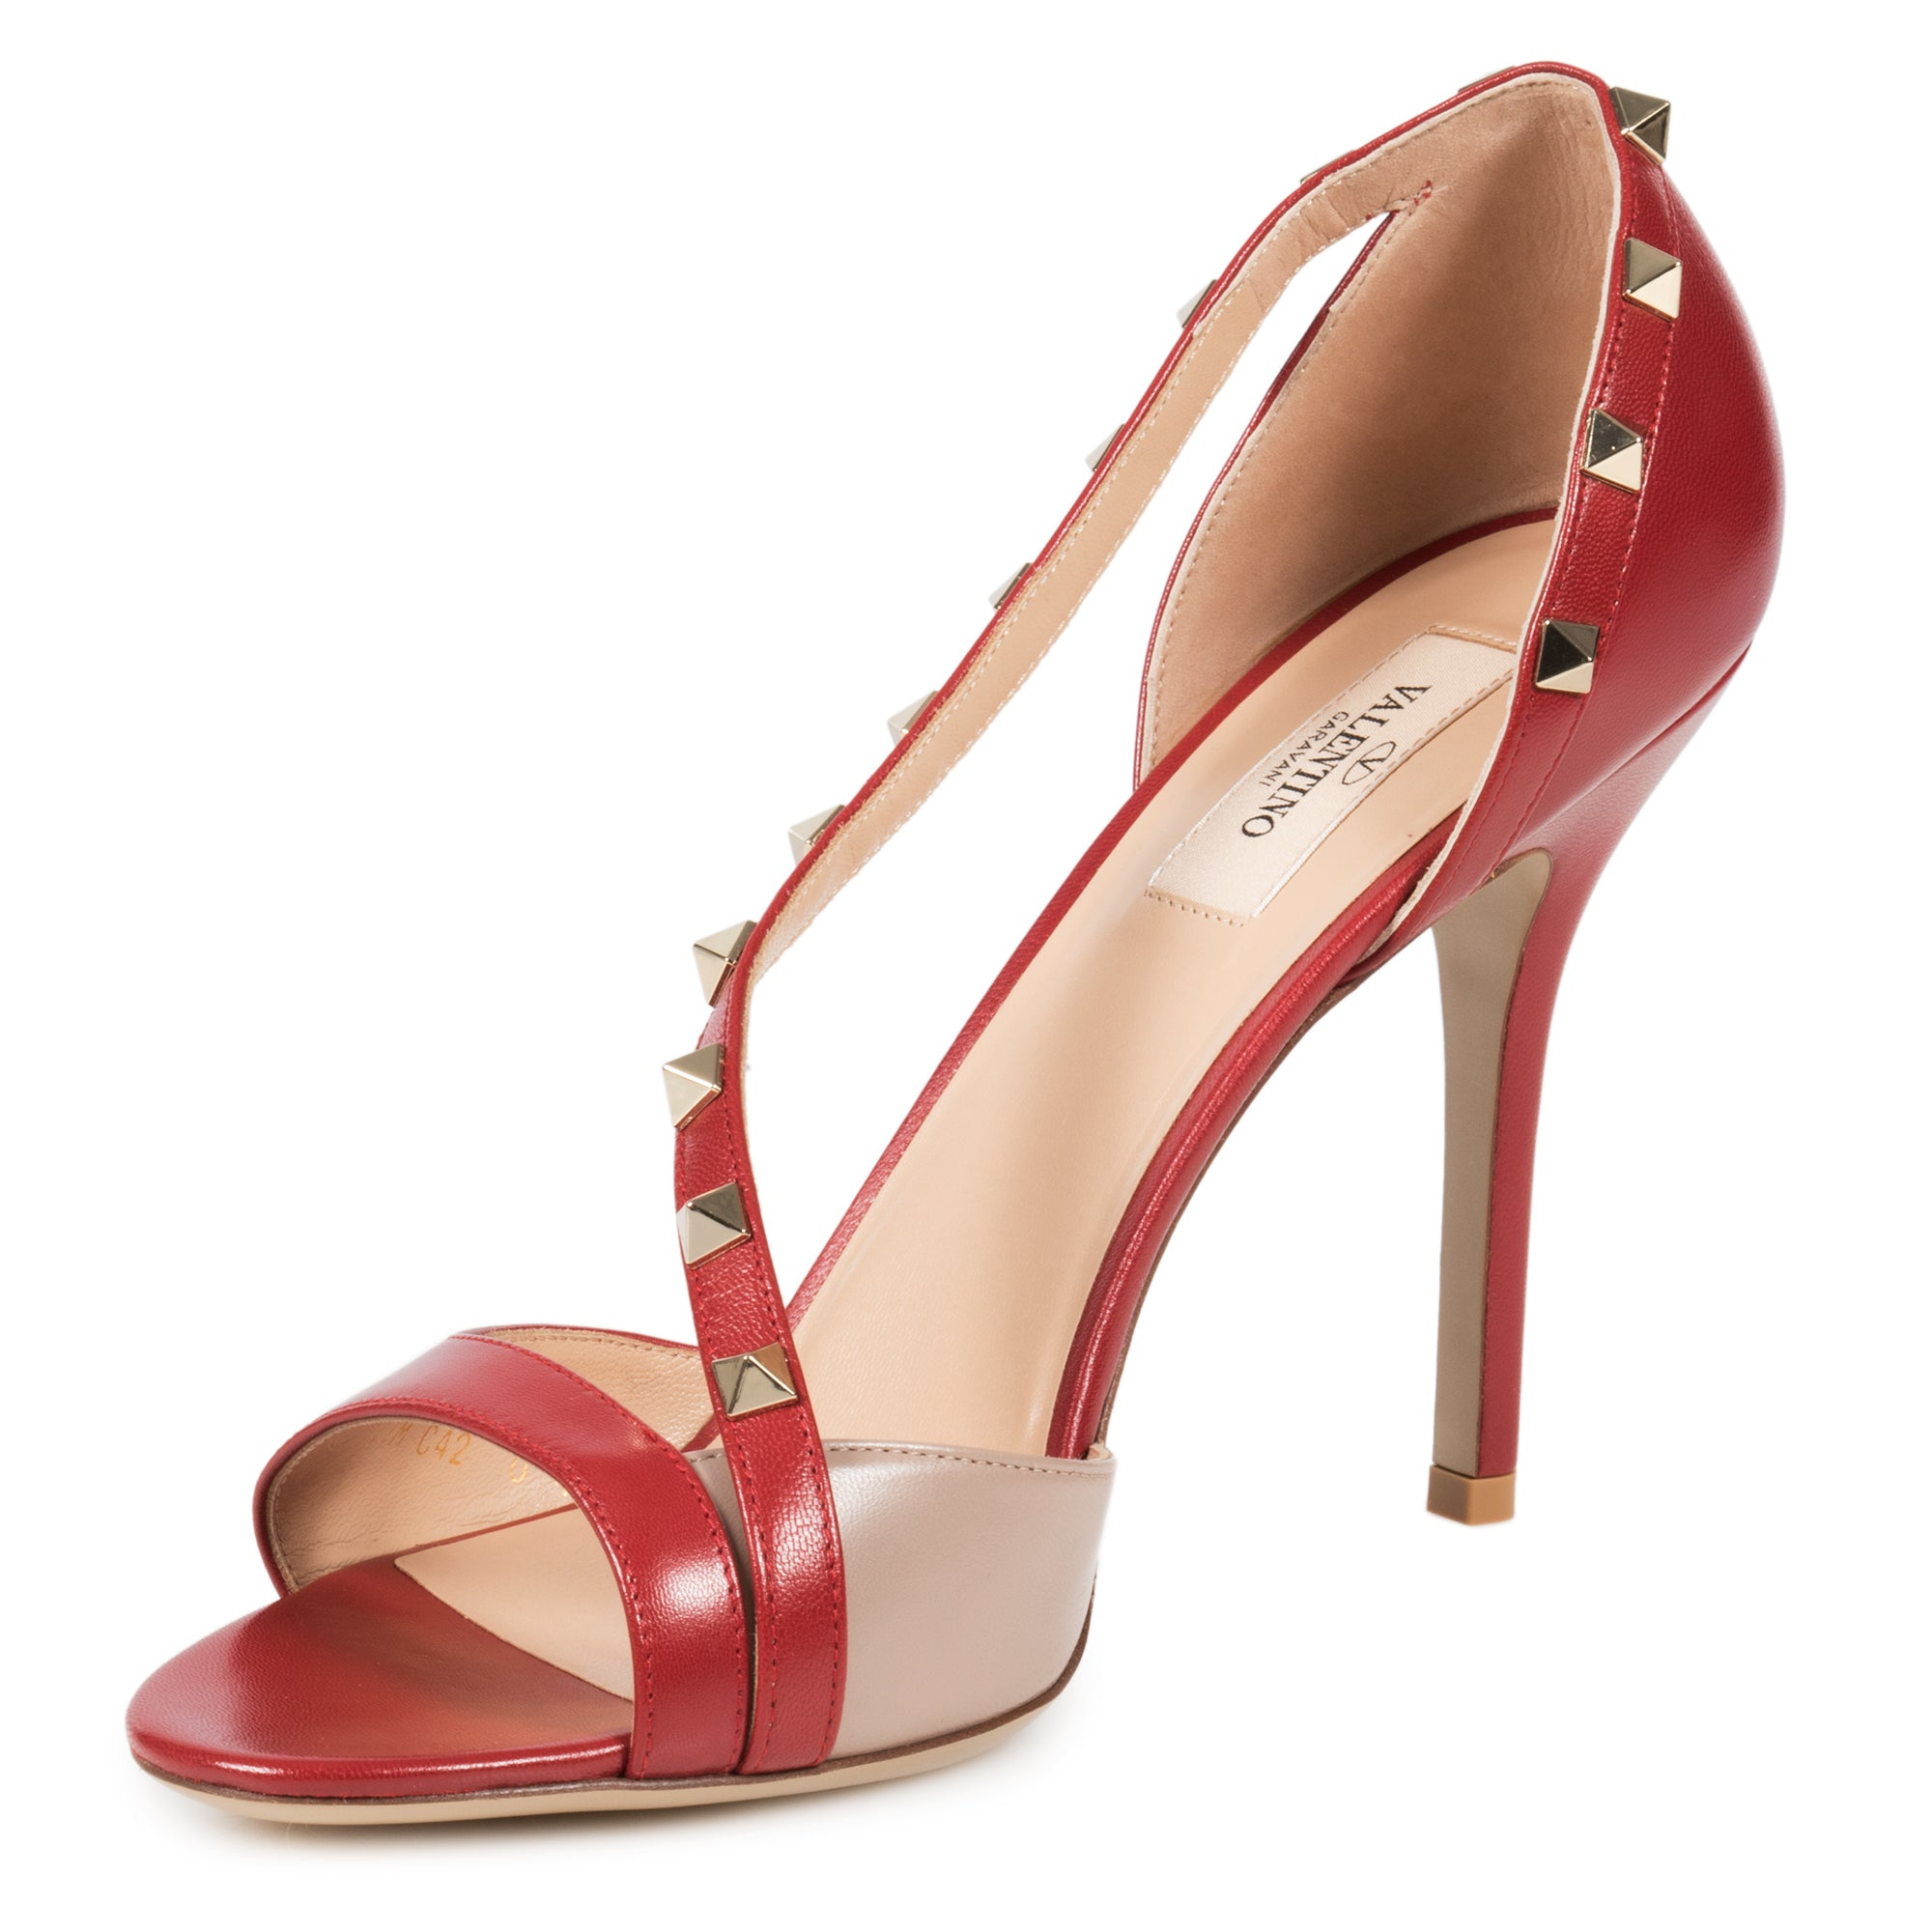 Valentino Rockstud Leather d'Orsay Peep Toe Pumps